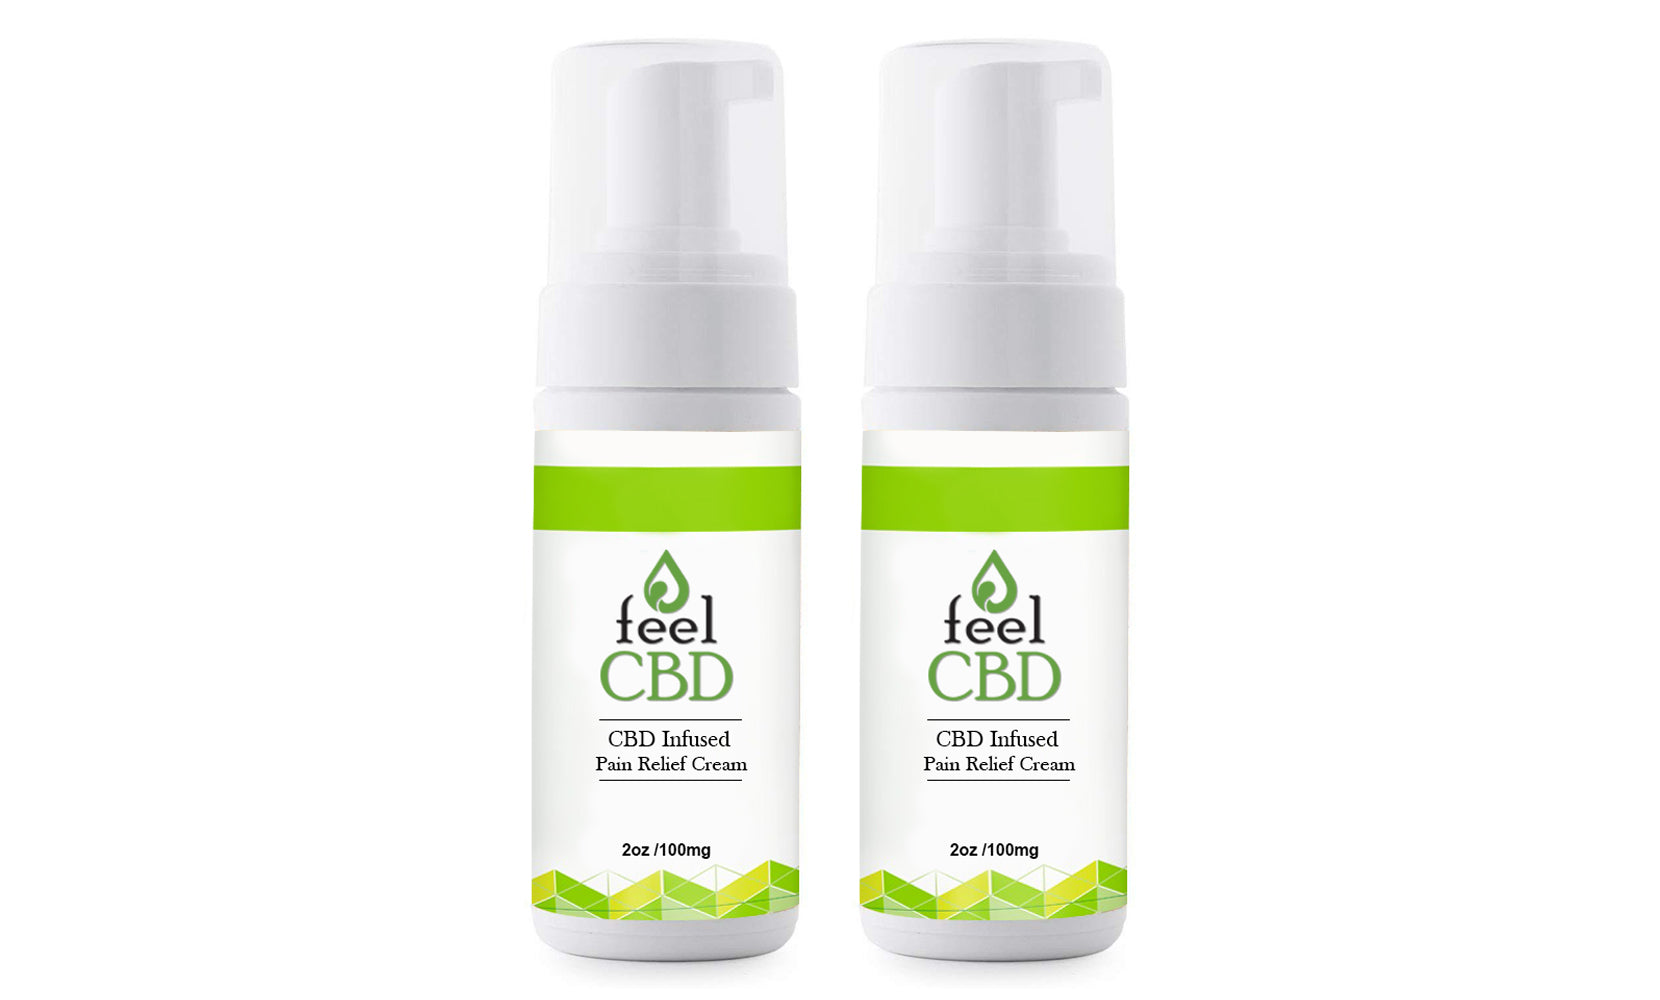 CBD Pain Relief Cream 100mg from feelCBD